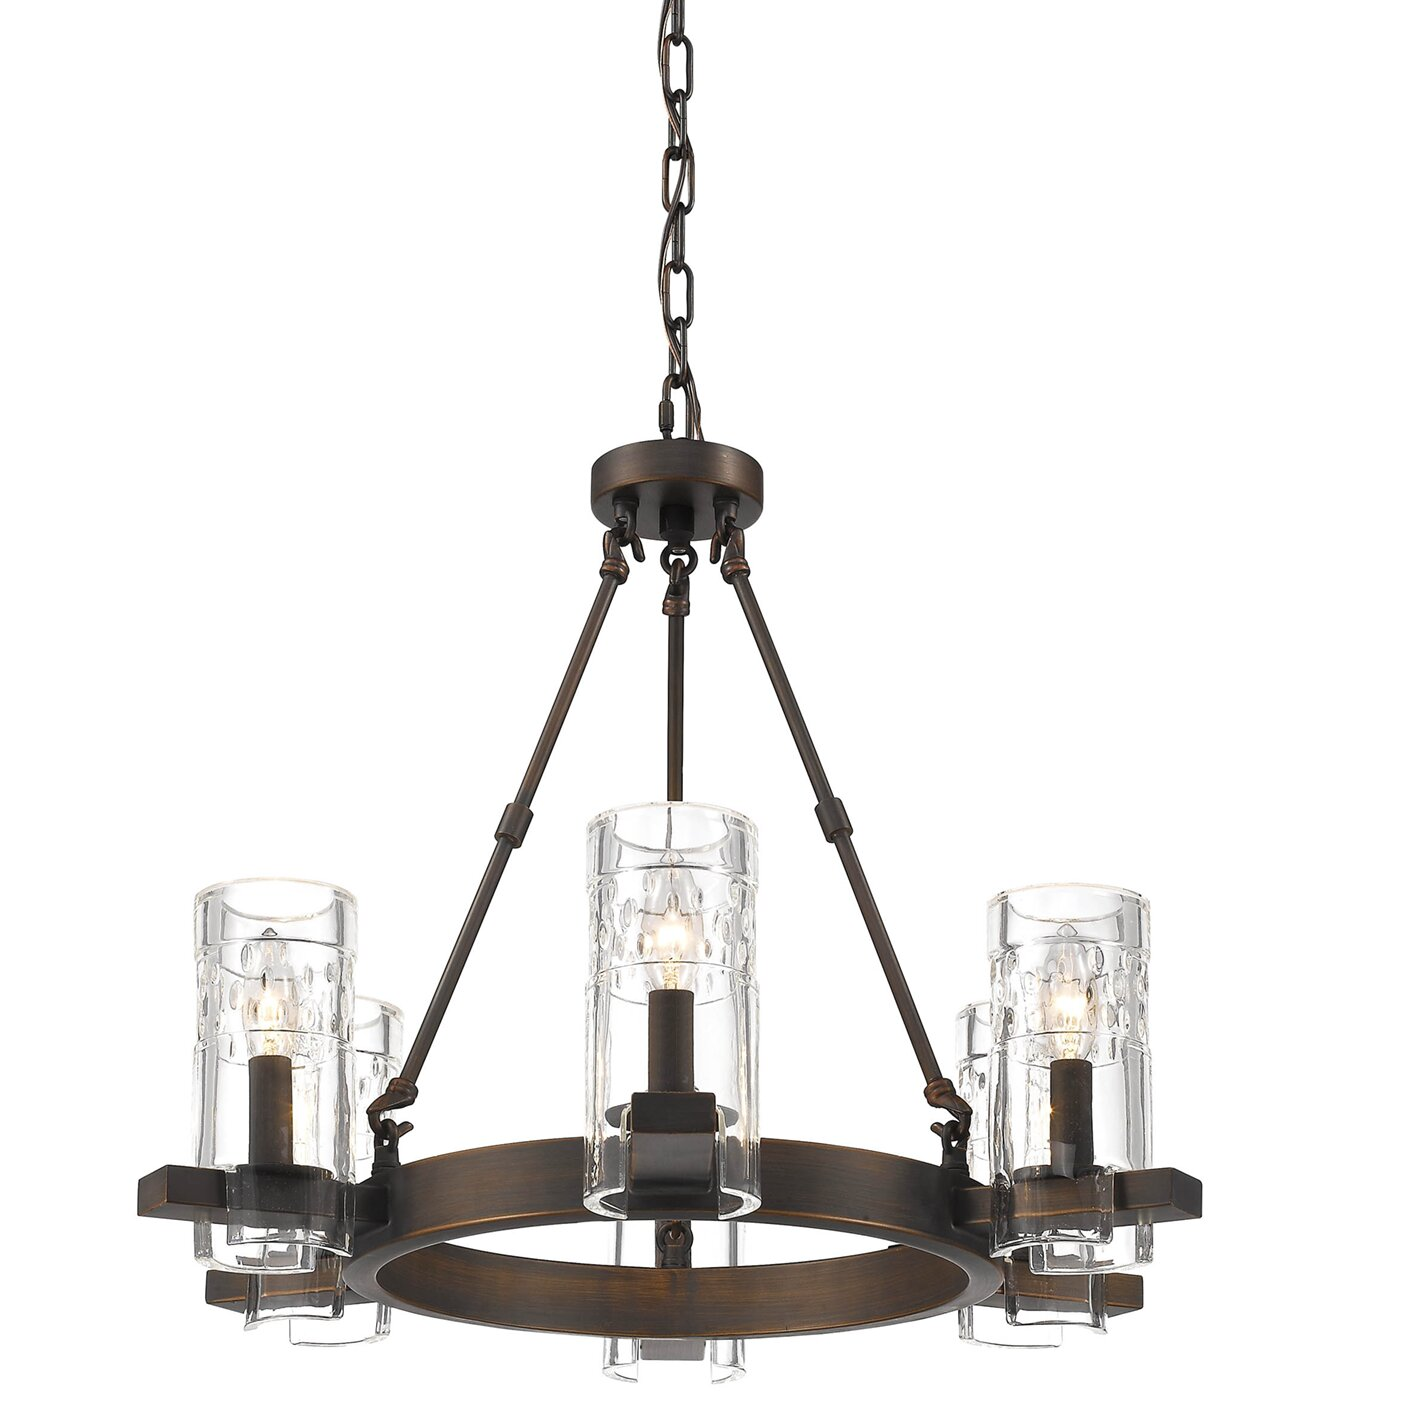 Union rustic khan 6 light wagon wheel chandelier wayfair